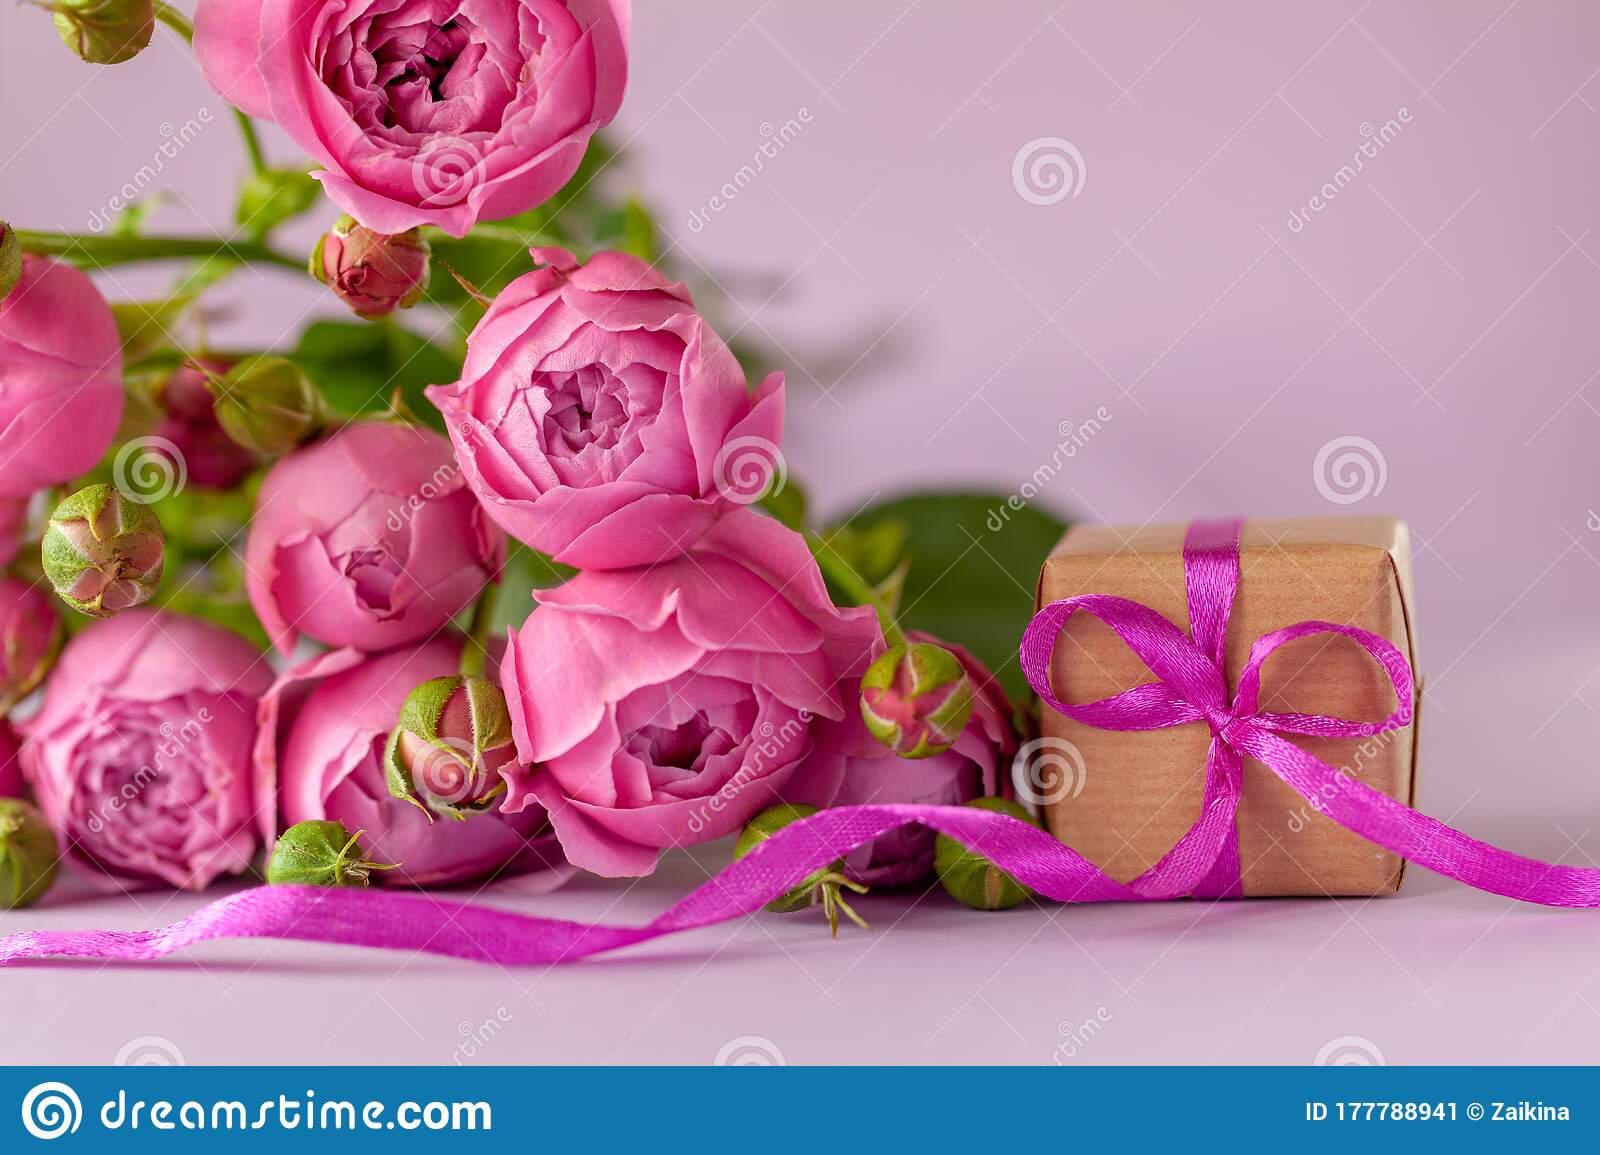 Gift Present Box With Beautiful Pink Flowers Roses Bouquet Concept Mother S Day Happy Birthday Stock Image Image Of Copy Happy 177788941